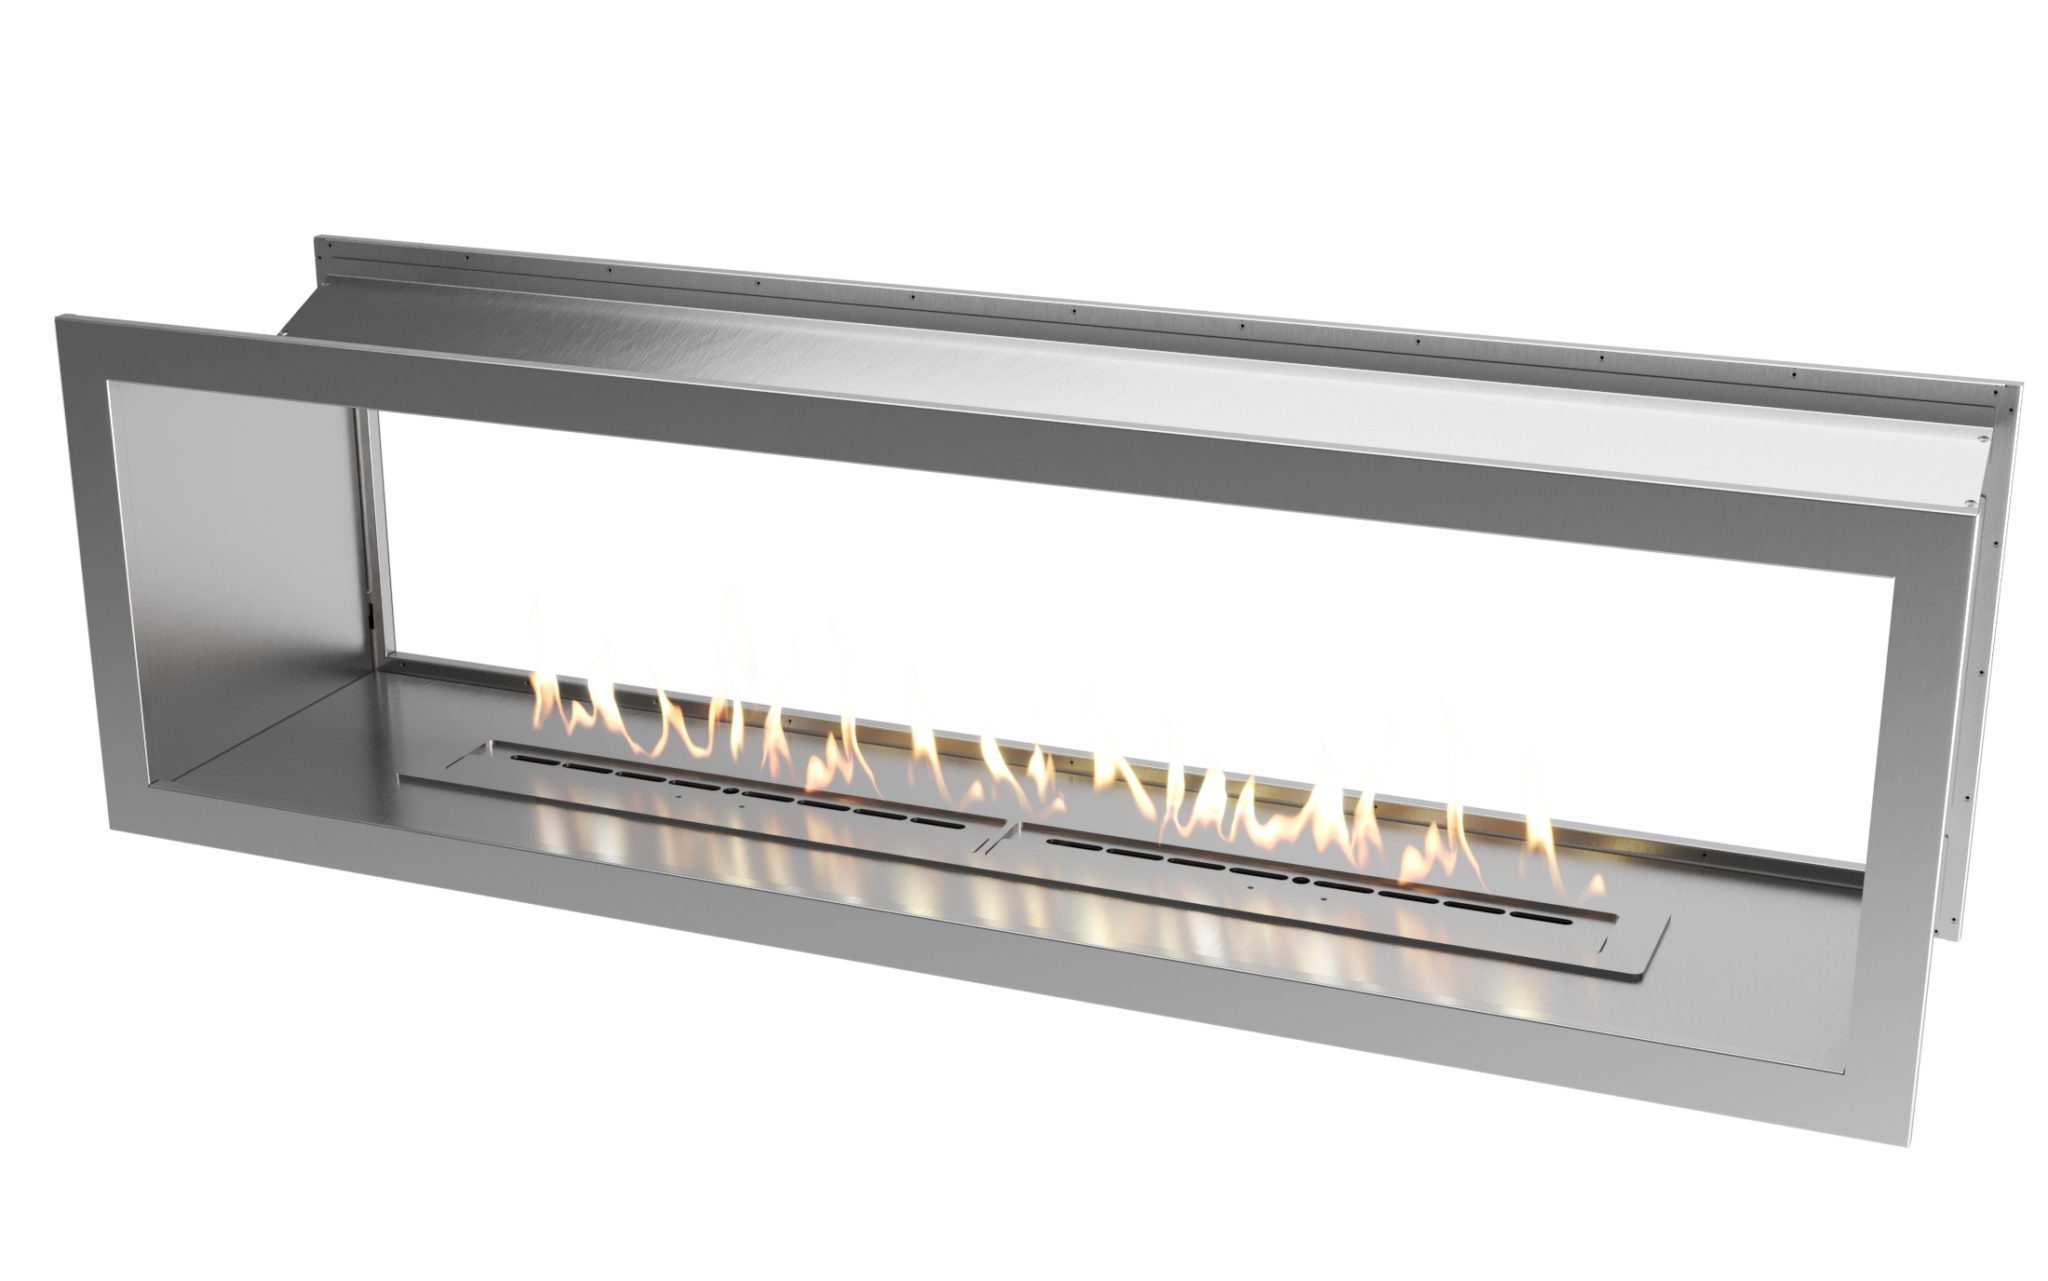 2000 Stainless steel double sided firebox with 1400 slimline biofuel burner